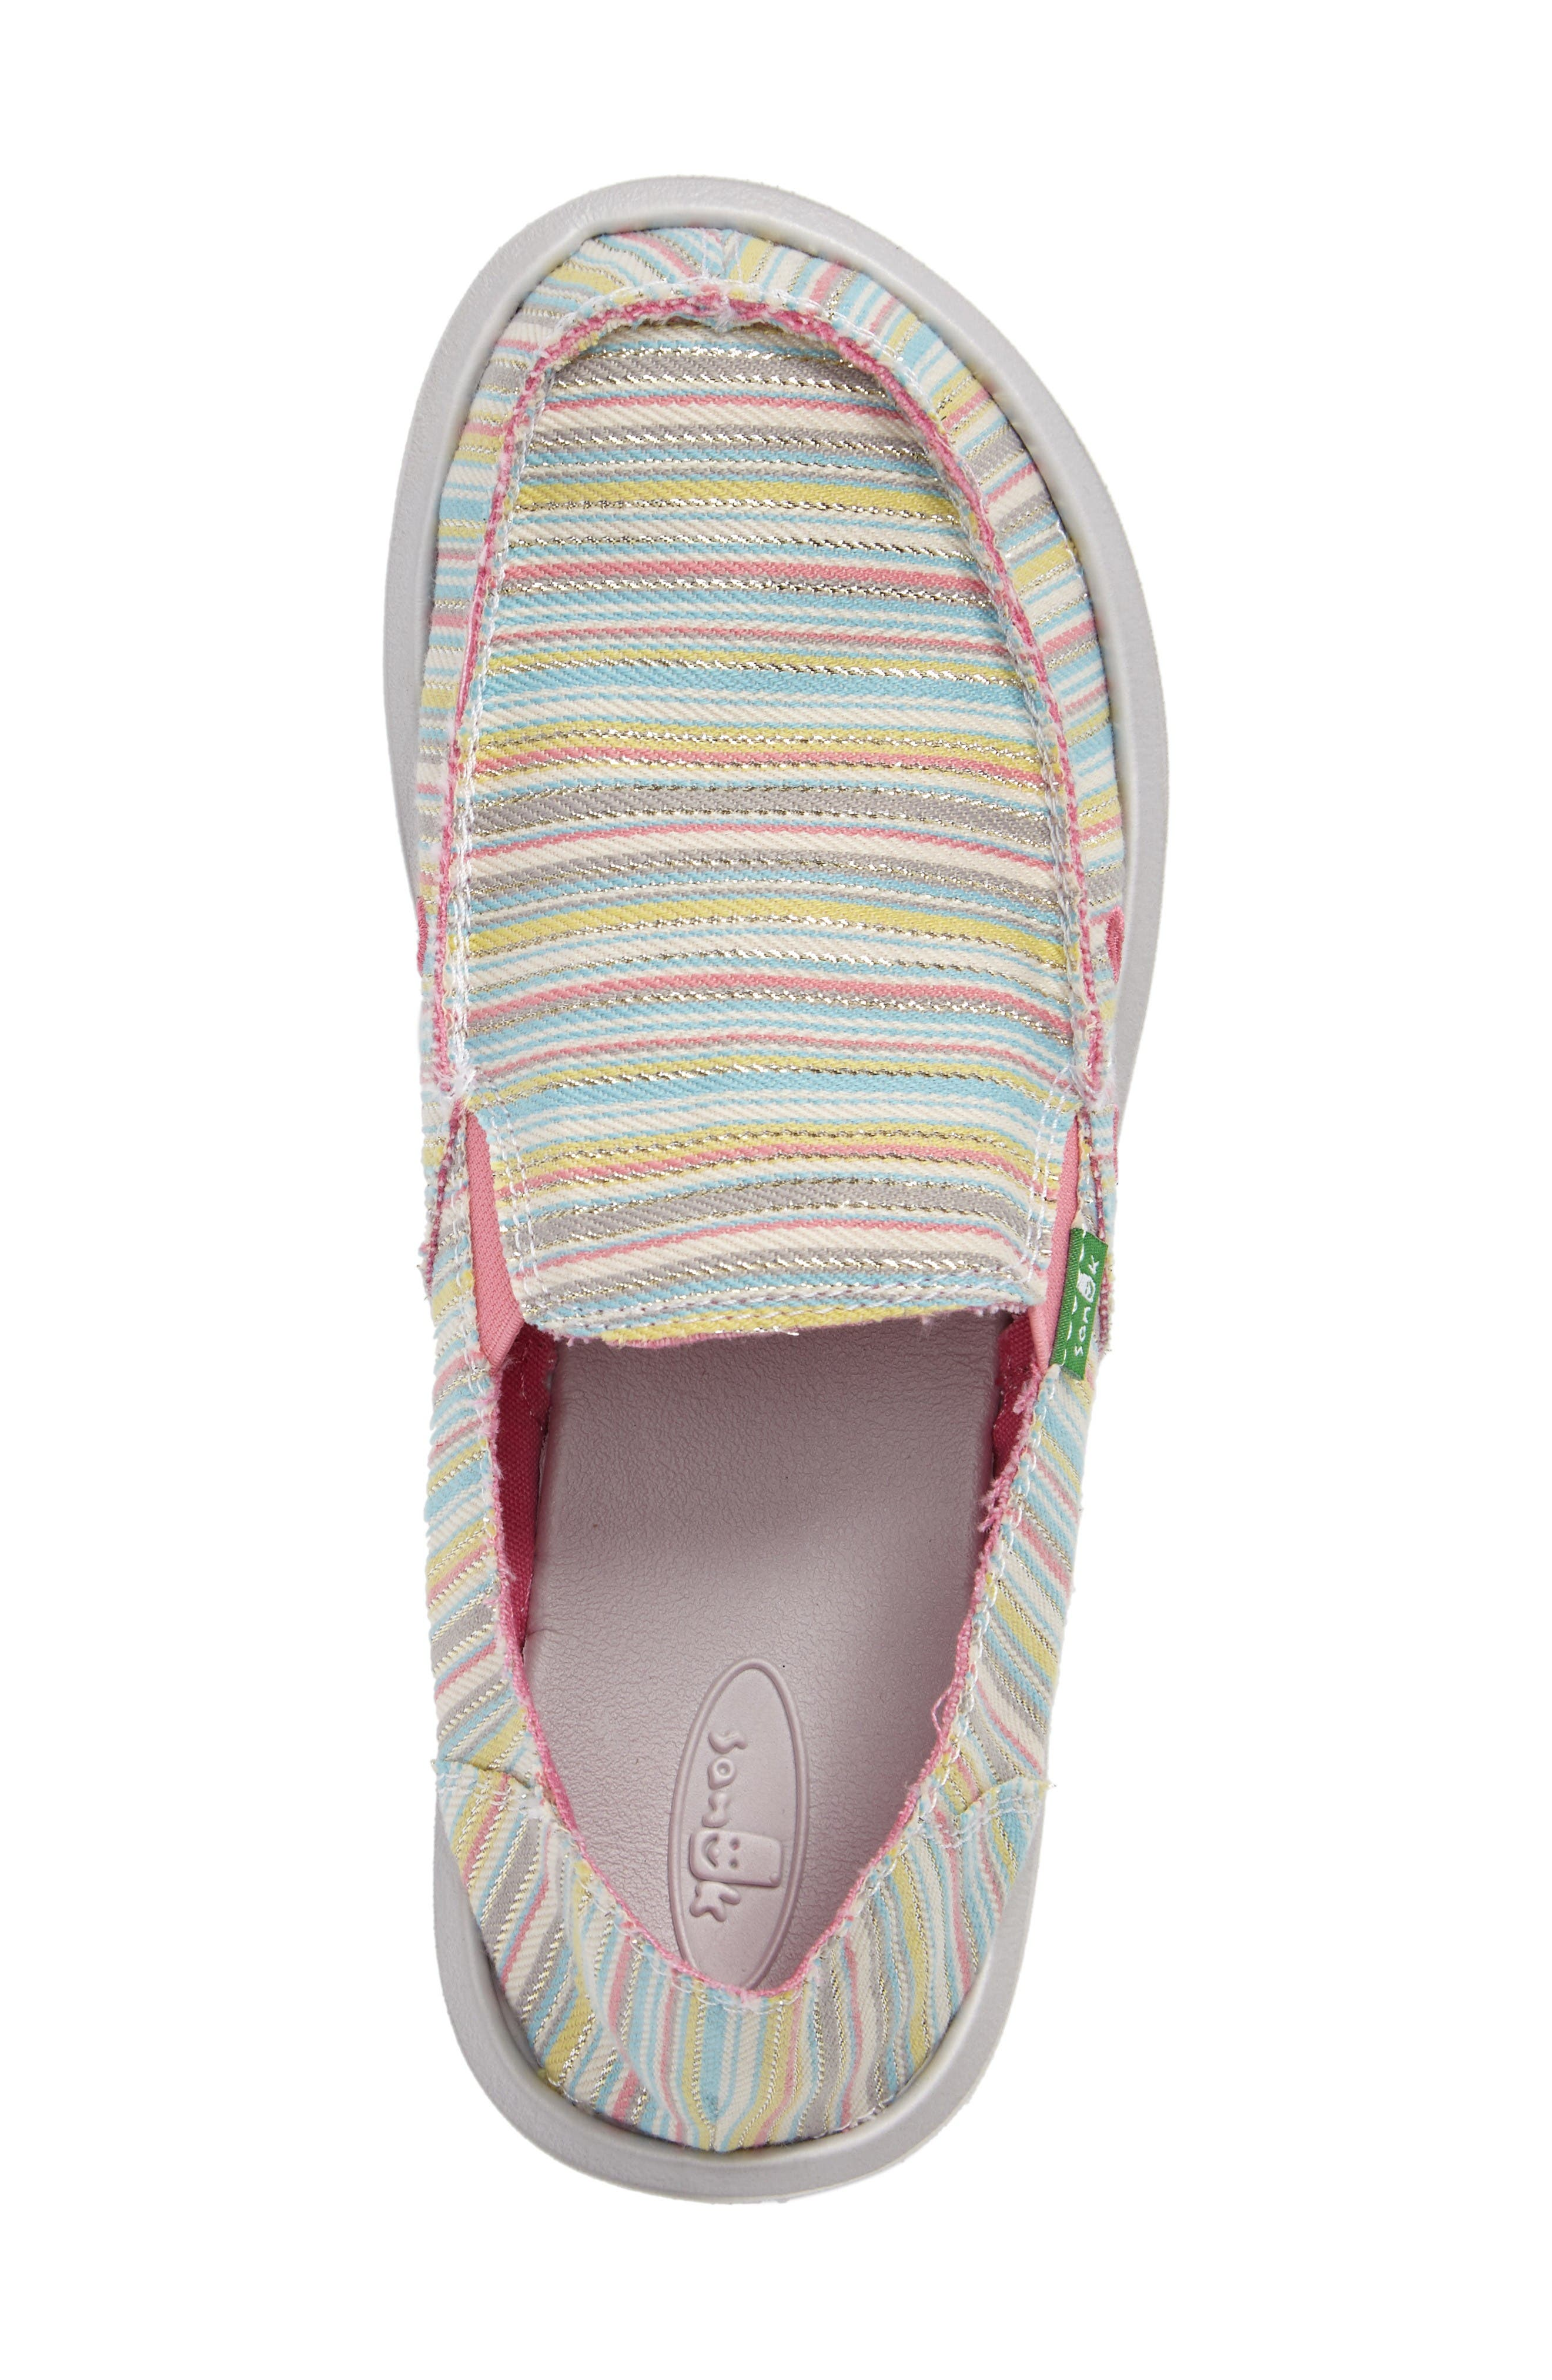 'Donna - Poncho' Vegan Slip-On,                             Alternate thumbnail 3, color,                             Aqua/ Pink Pinstripe